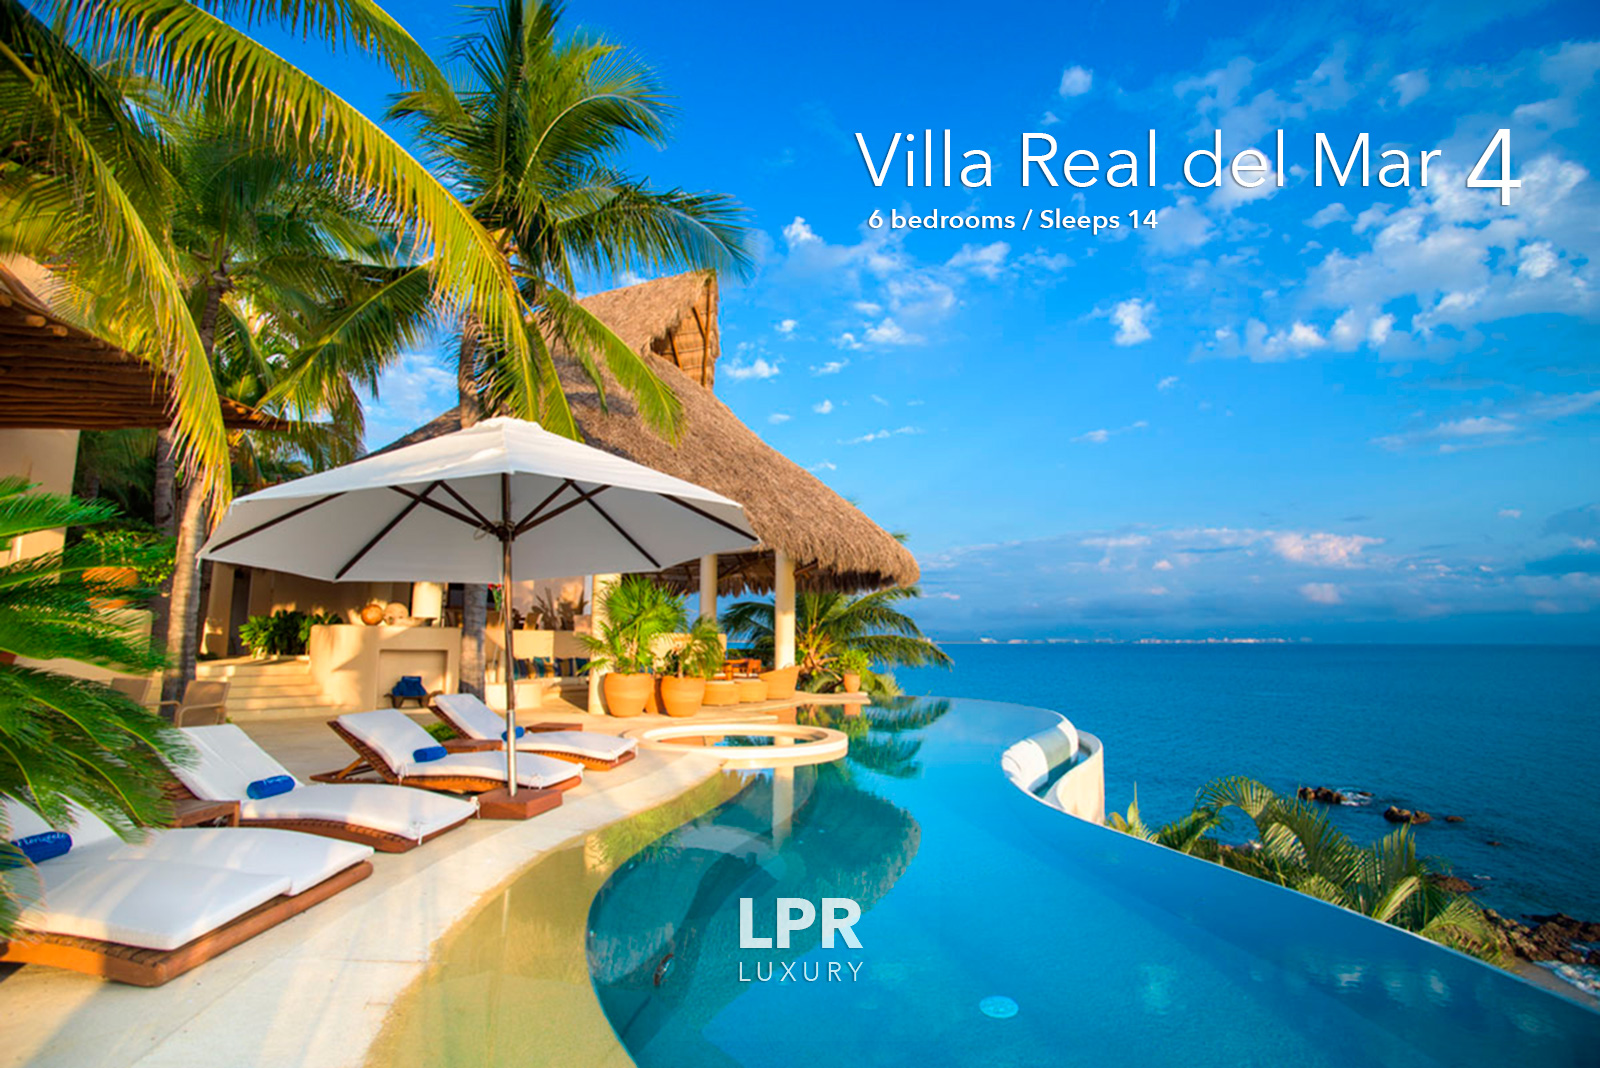 Villa Real del Mar 4 - Luxury beachfront vacation rental villa in Punta de Mita - La Cruz de Huanacaxtle, Riviera Nayarit, Mexico